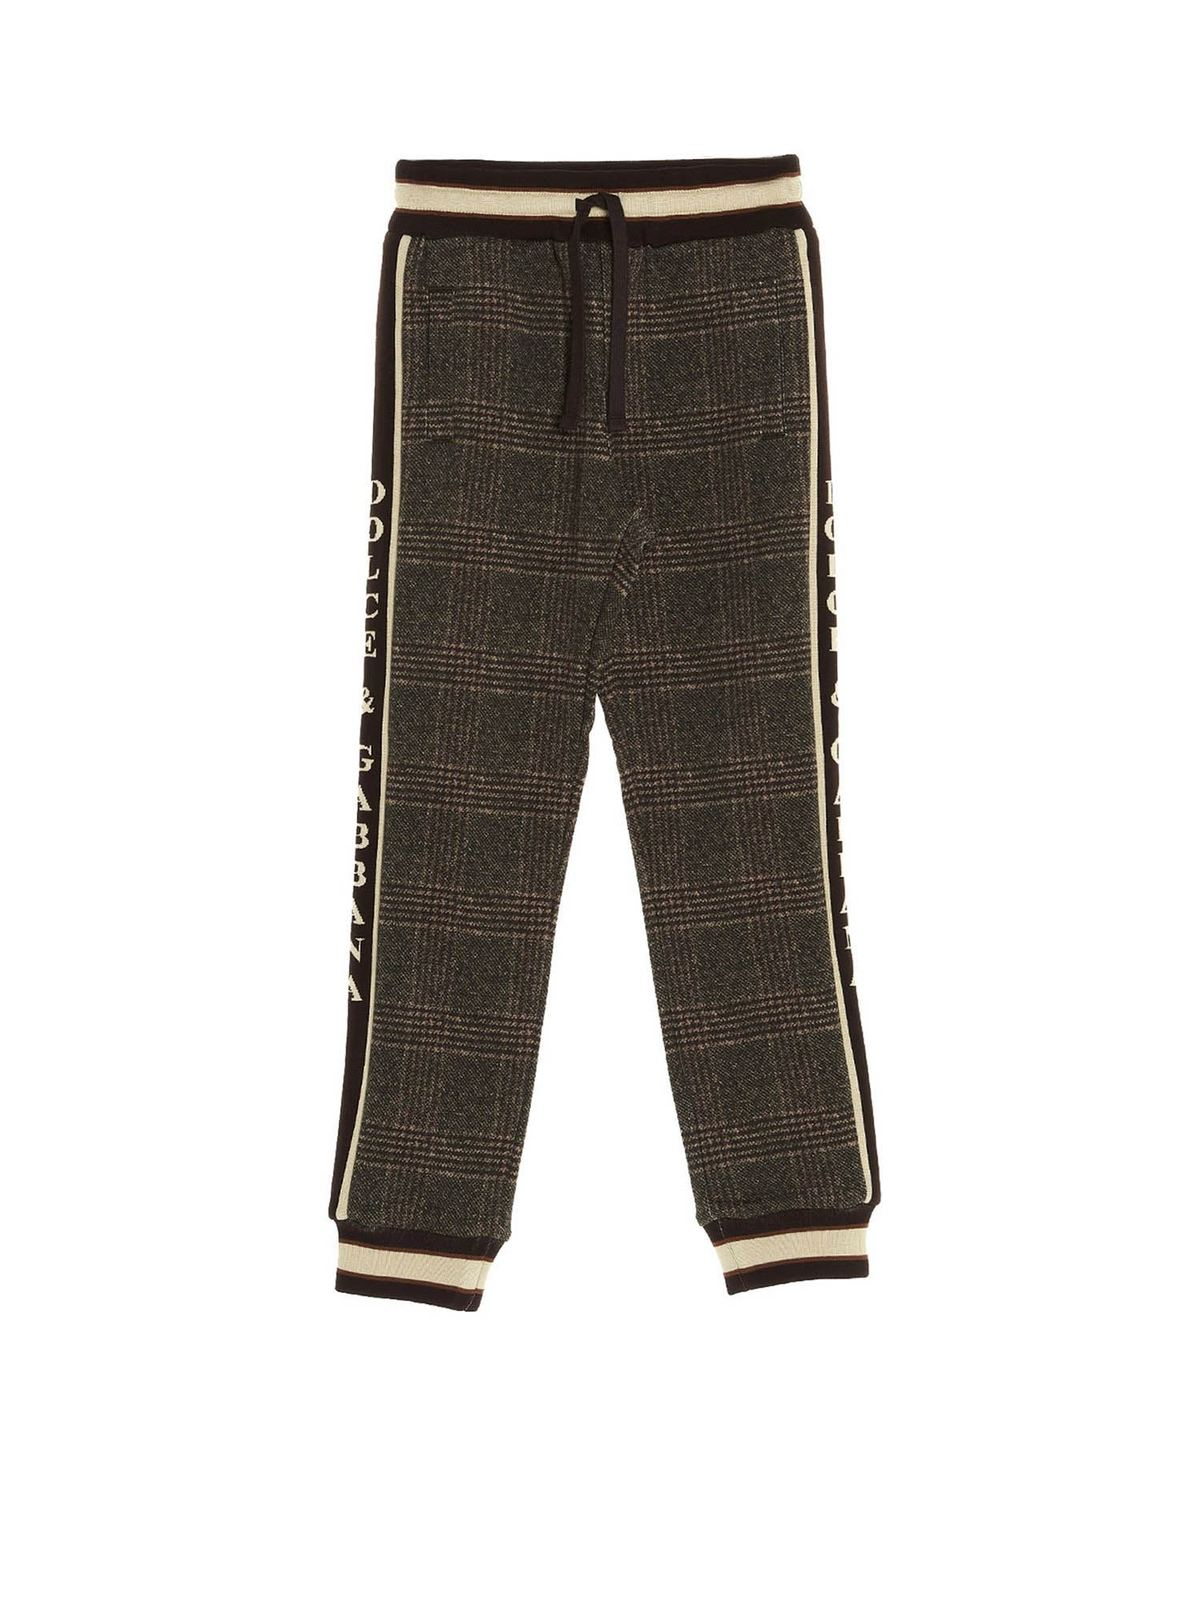 DOLCE & GABBANA JR CHECKED JOGGING PANTS IN BROWN